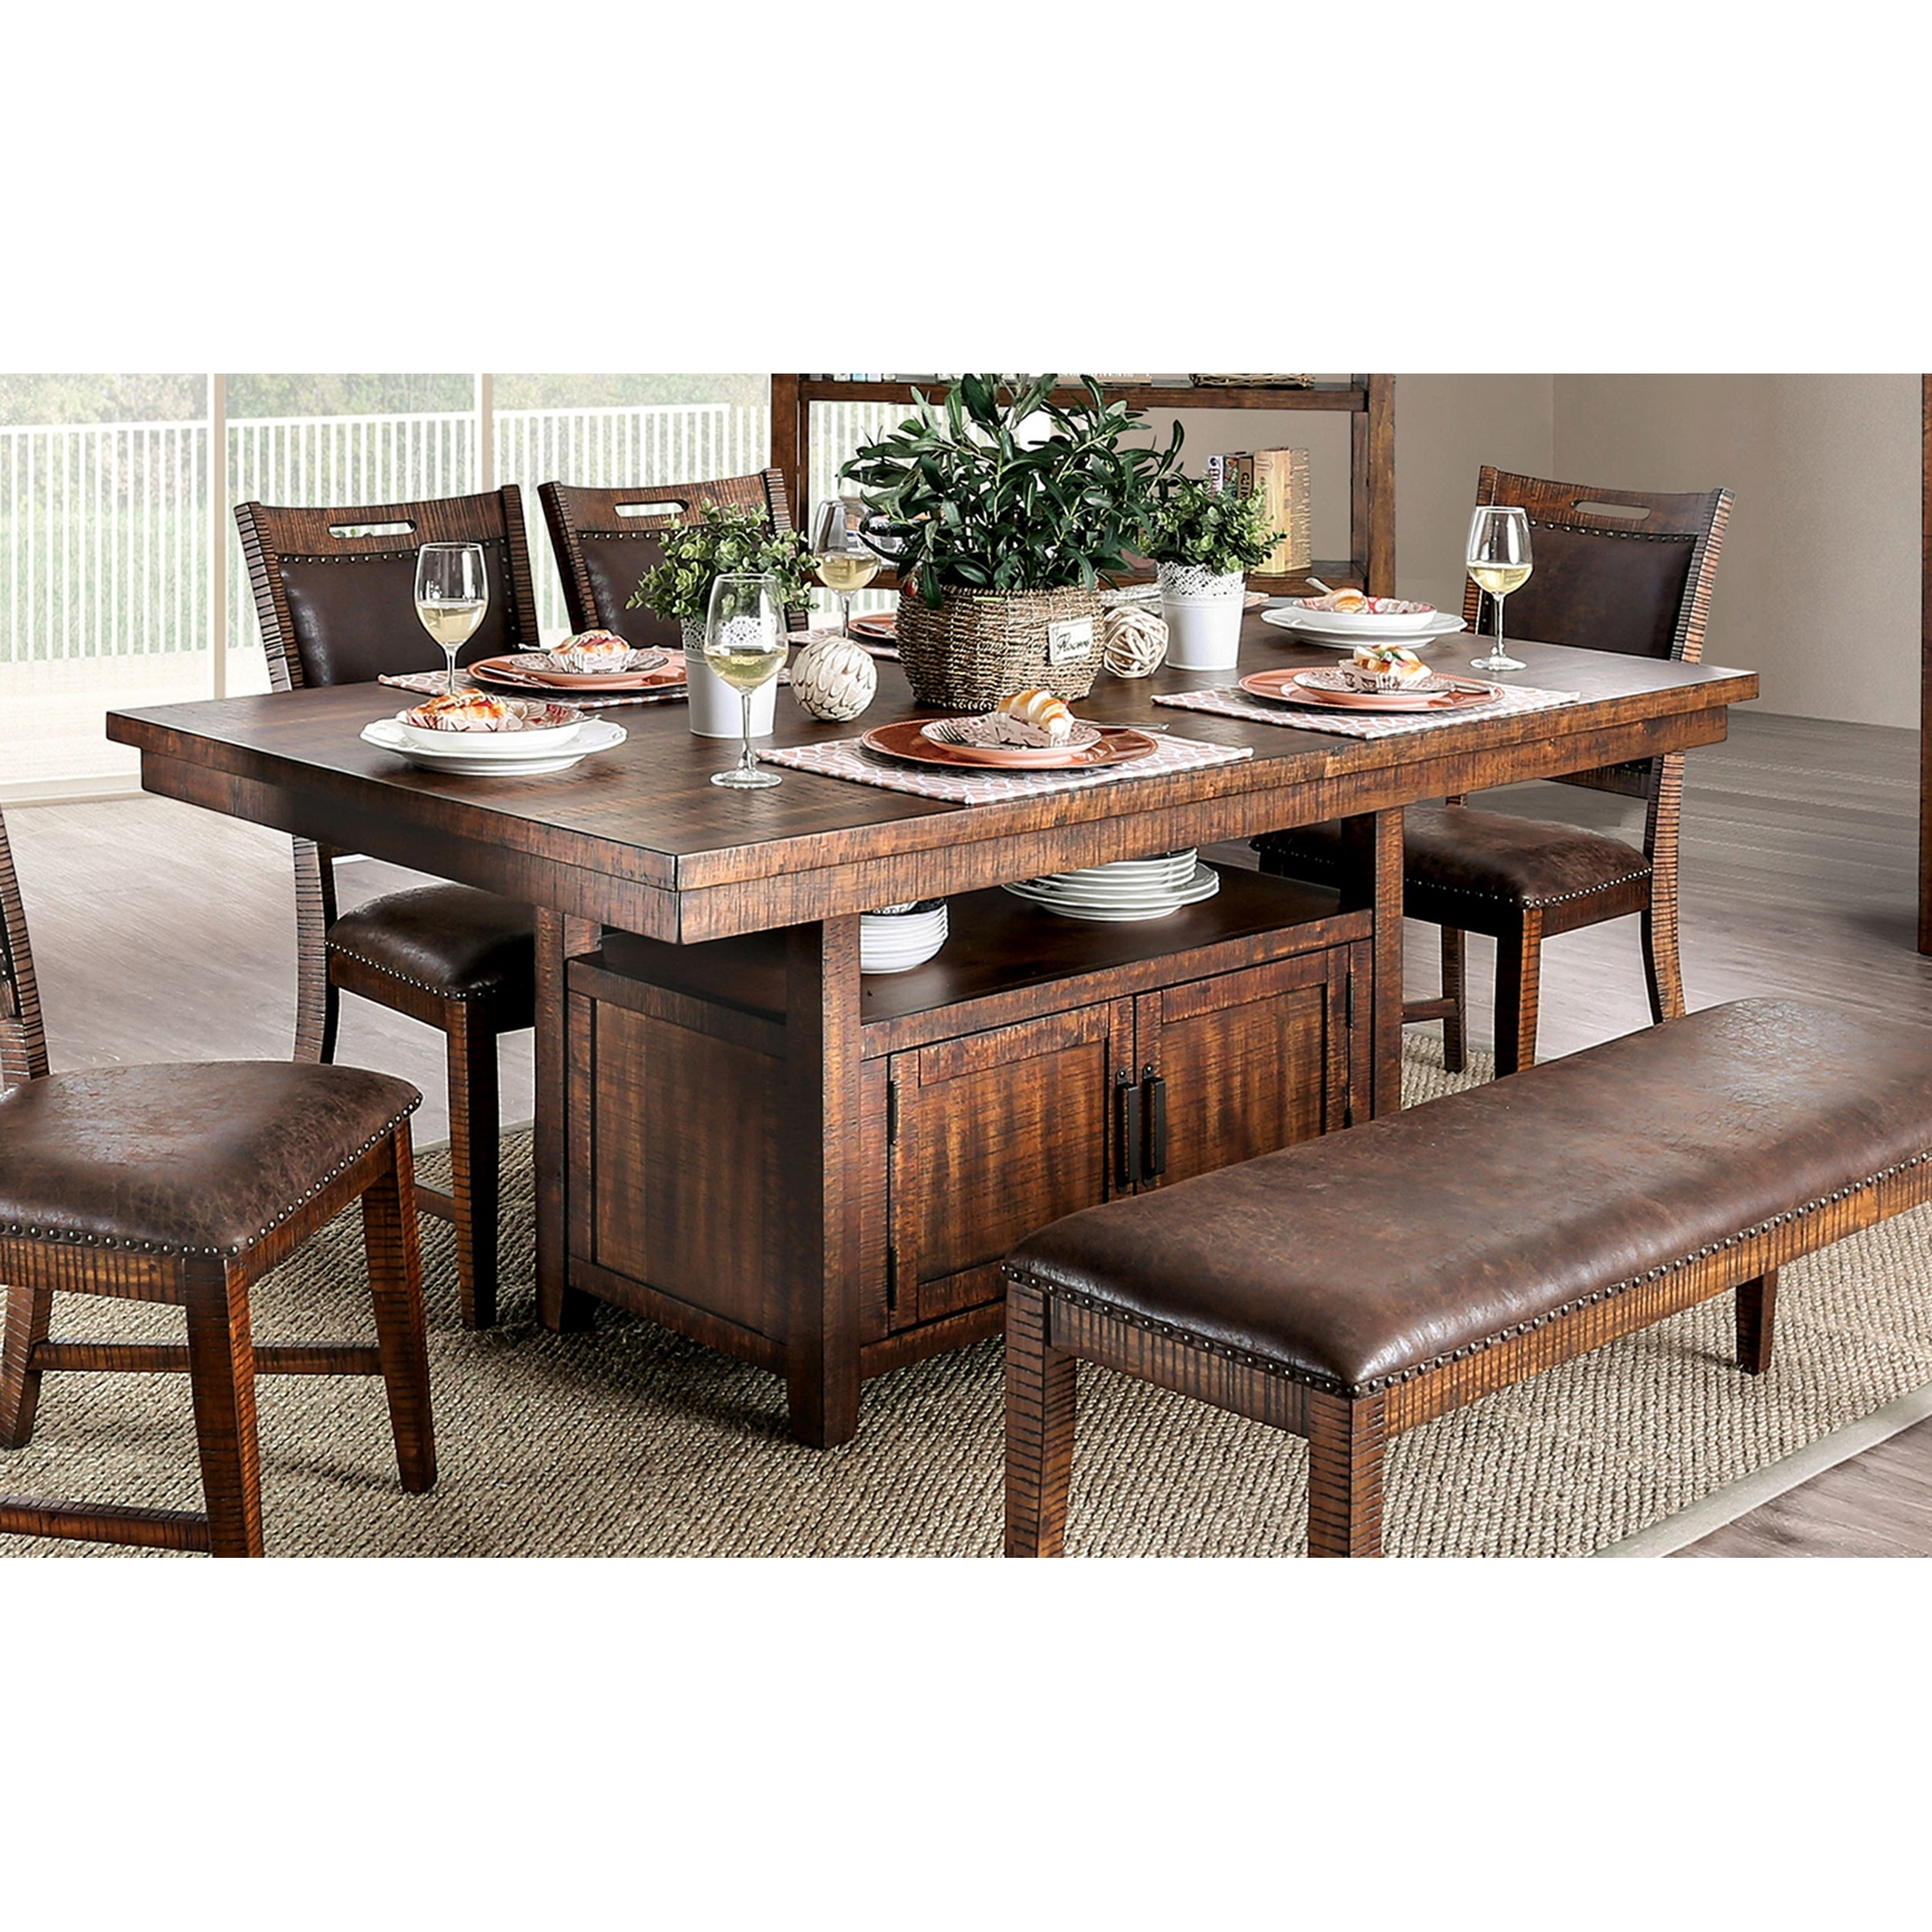 Furniture Of America Rainier Transitional 75 Inch Walnut Dining Table On Sale Overstock 27600022